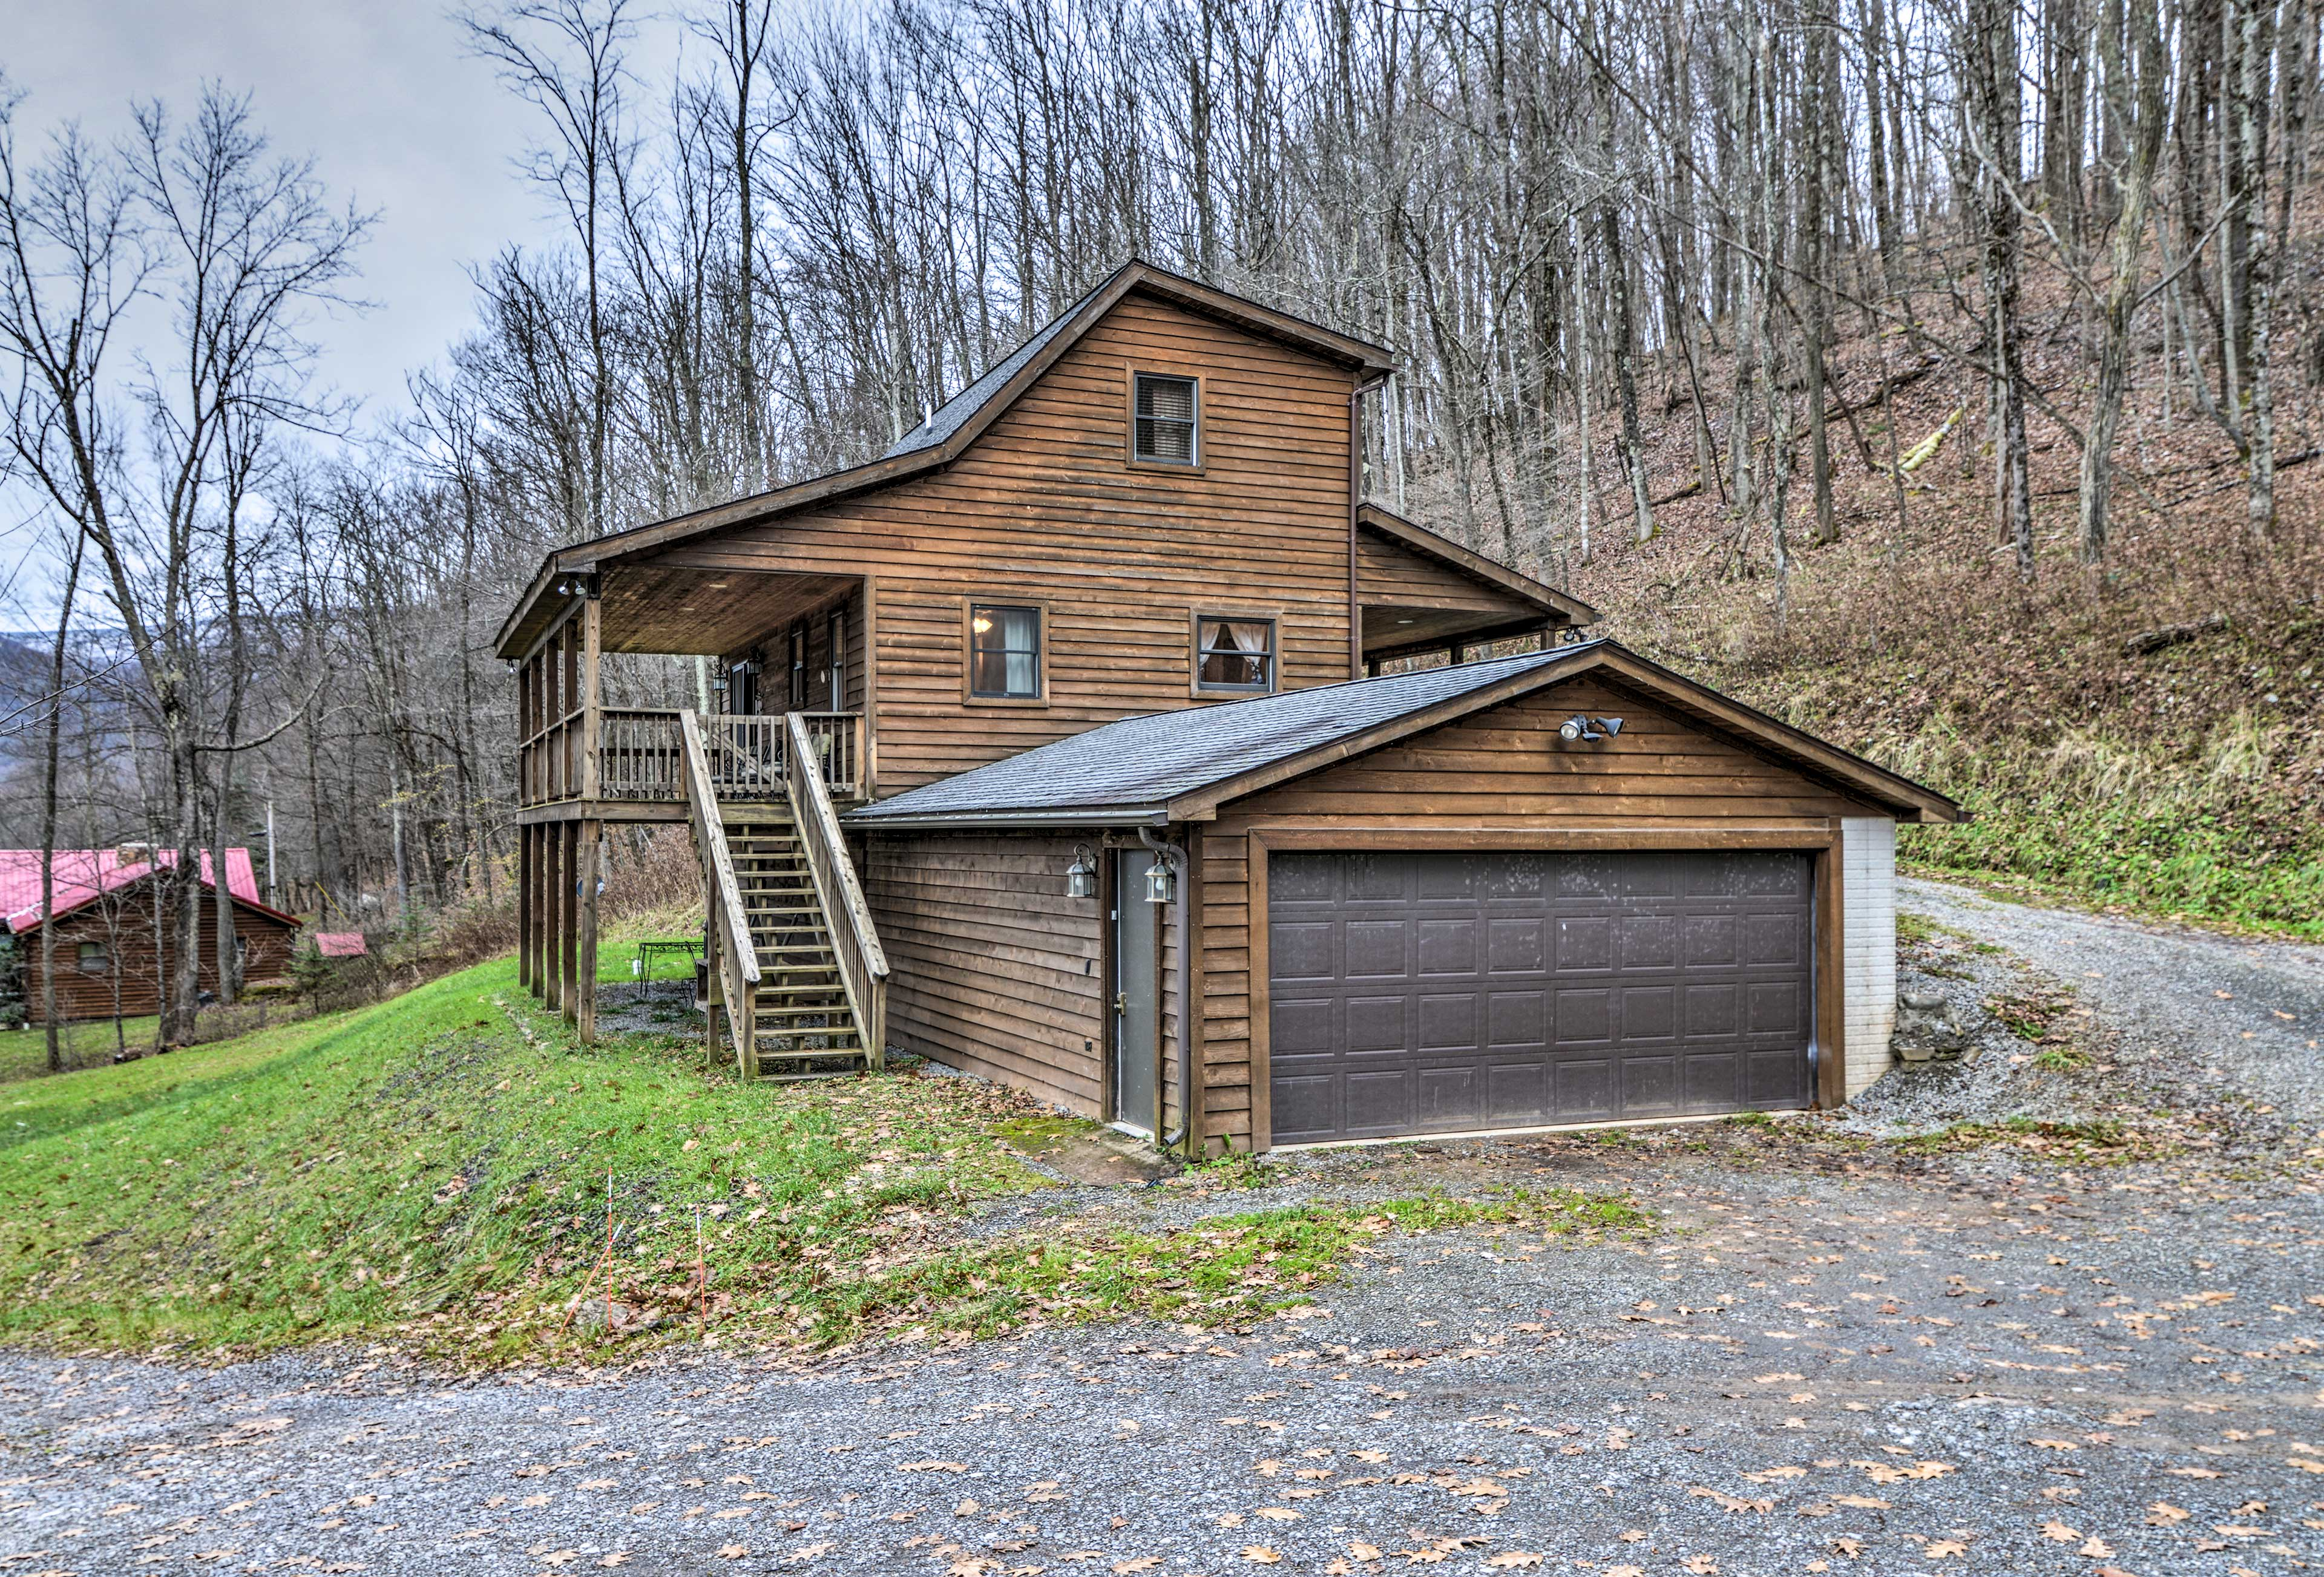 The cabin offers free driveway parking for up to 3 vehicles.